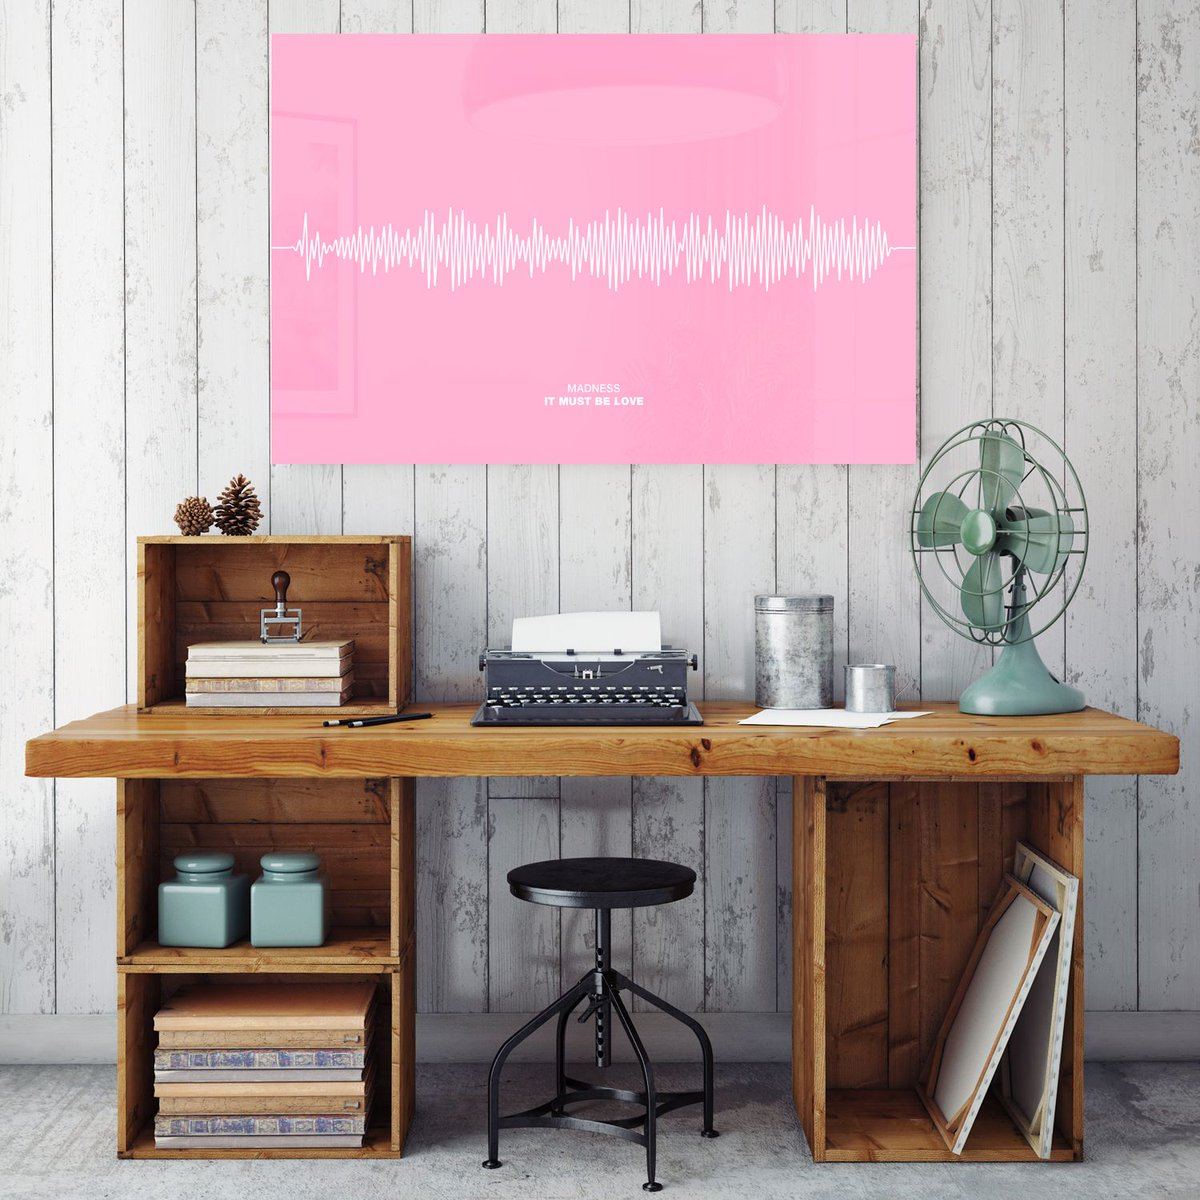 MAY-Beeeee! You're gonna be the one that saves meeeeeeee! Sound Wave art and More... From Only £25 and Free Delivery. . . #monowaveart #music #art #design #personalised #gift #popmusic #indiemusic #rockmusic #wedding #anniversary #love #cute #Oasis https://t.co/5Wpnj3WYcW